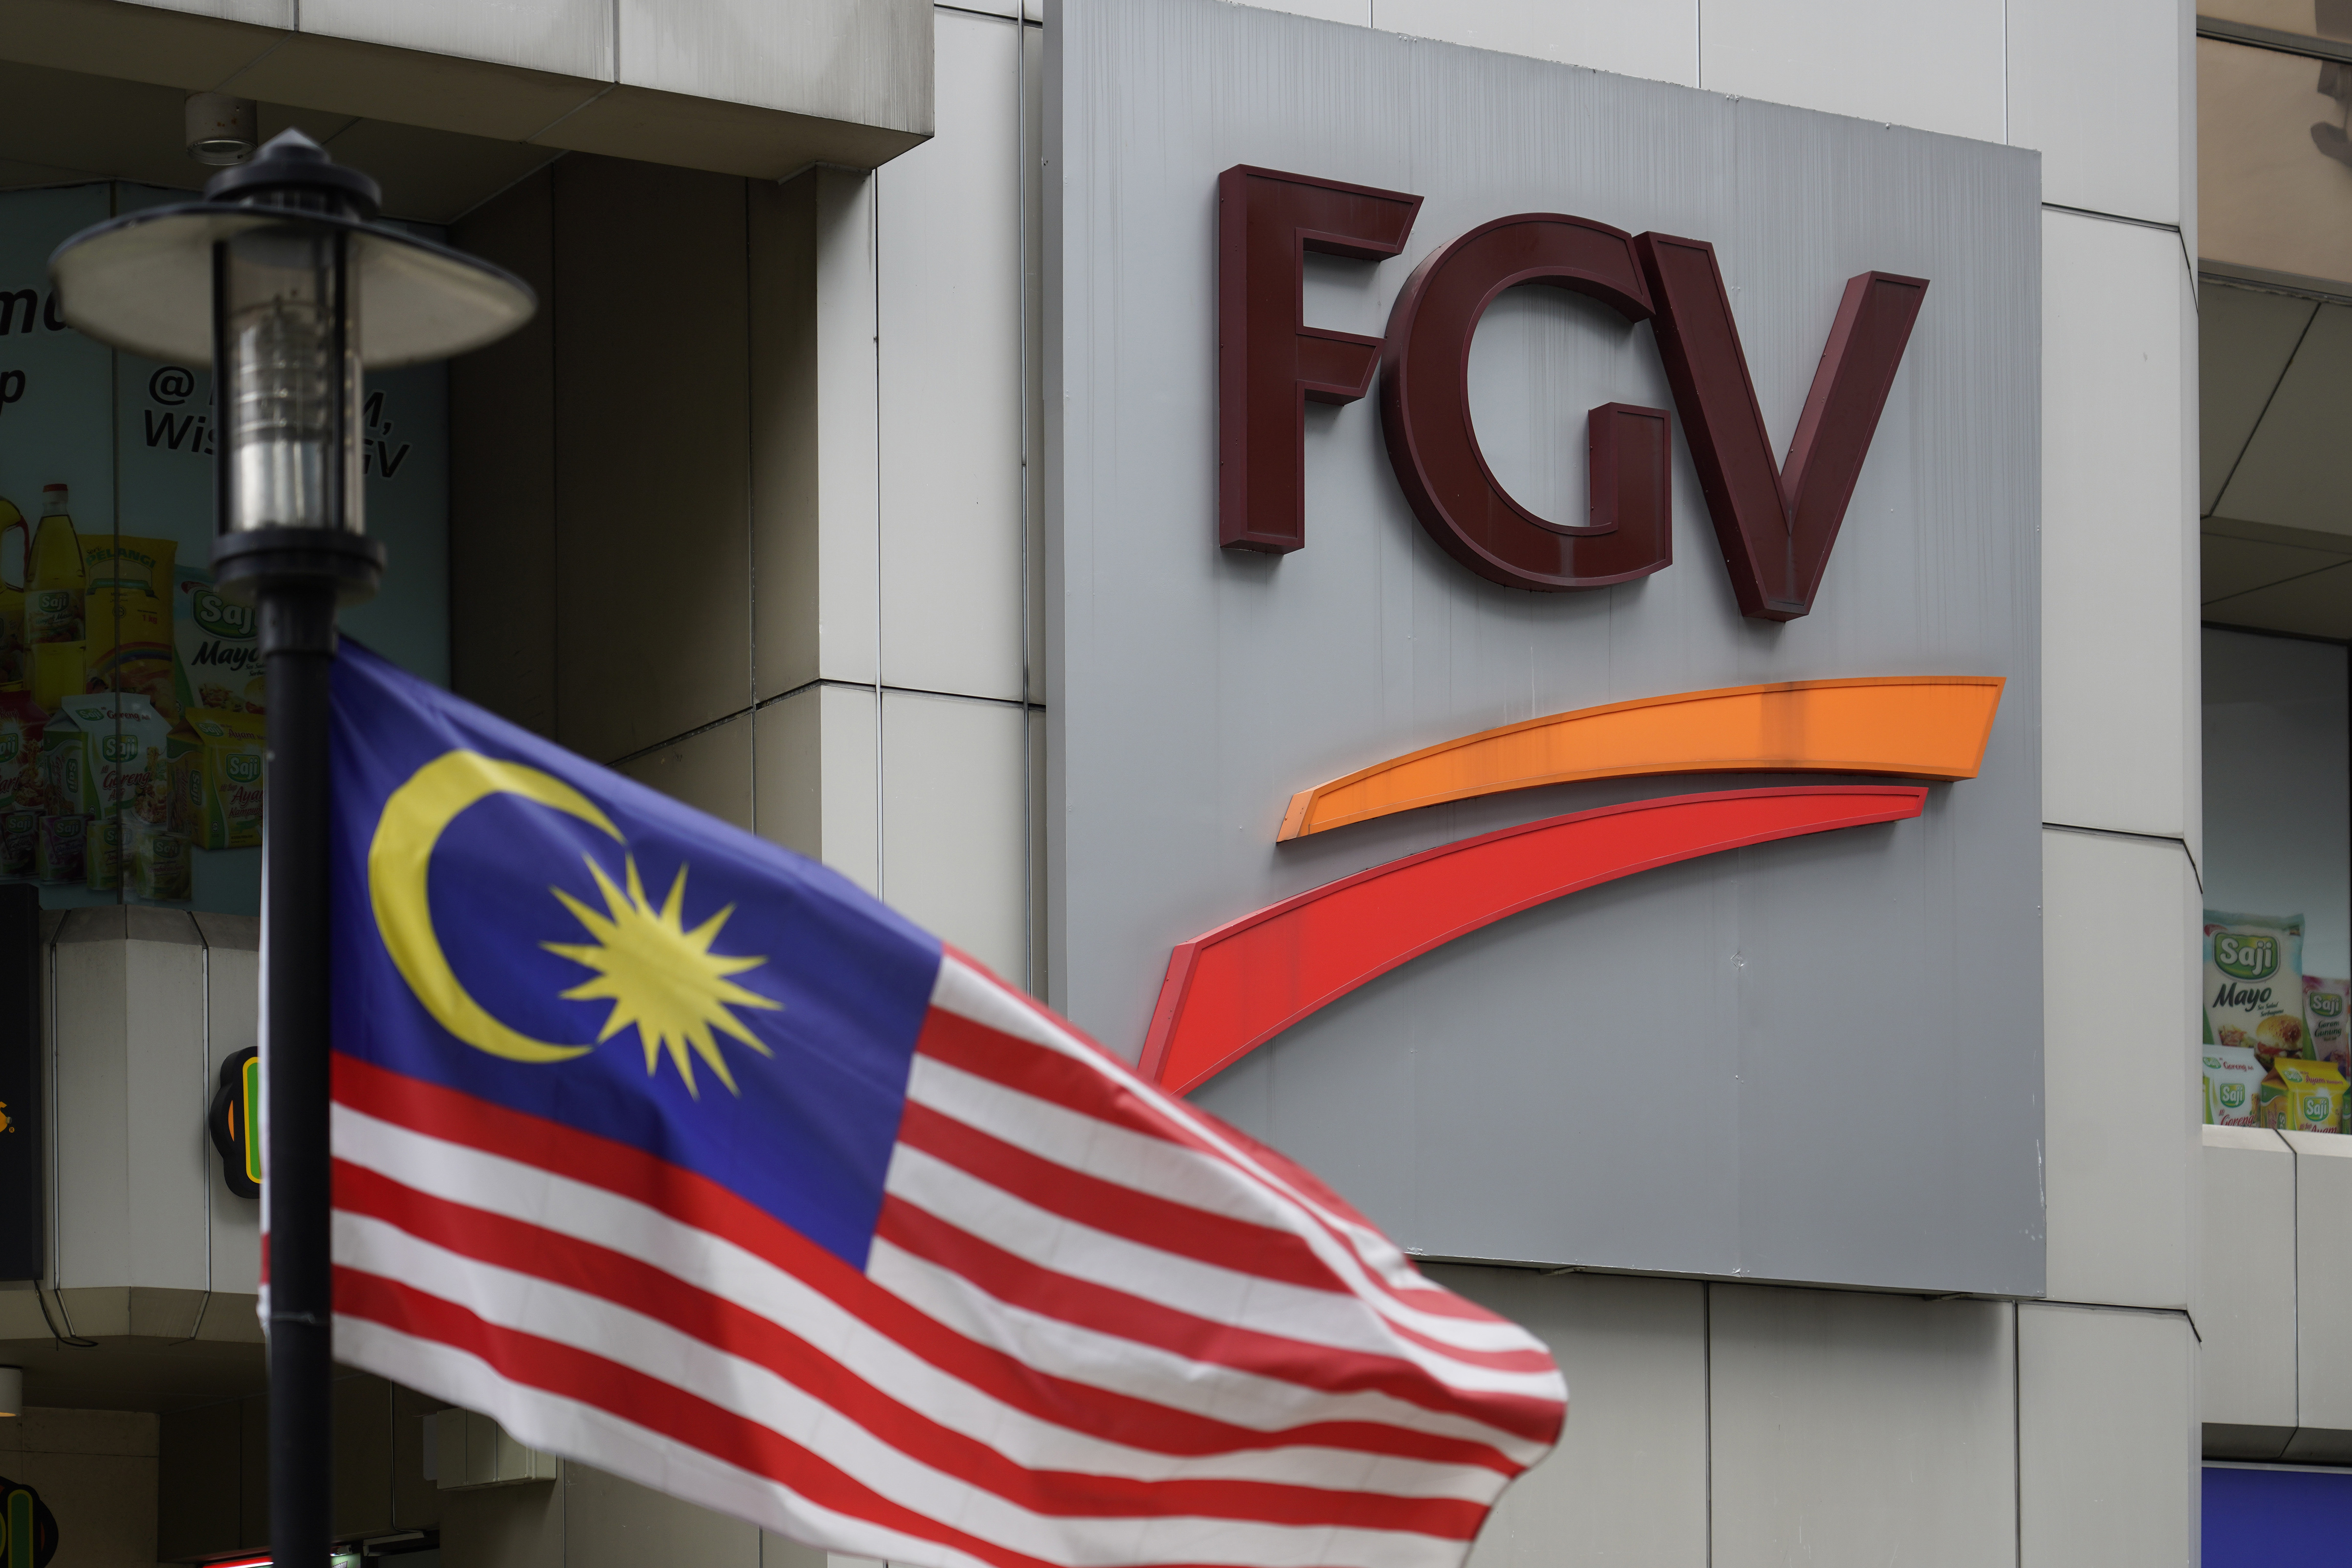 """A Malaysian national flag is on display outside FGV Holdings Berhad, one of Malaysia's largest palm oil companies, in Kuala Lumpur, Thursday, Oct. 1, 2020. Malaysian palm oil producer FGV Holdings Berhad vowed Thursday to """"clear its name"""" after the U.S. banned imports of its palm oil over allegations of forced labor and other abuses."""